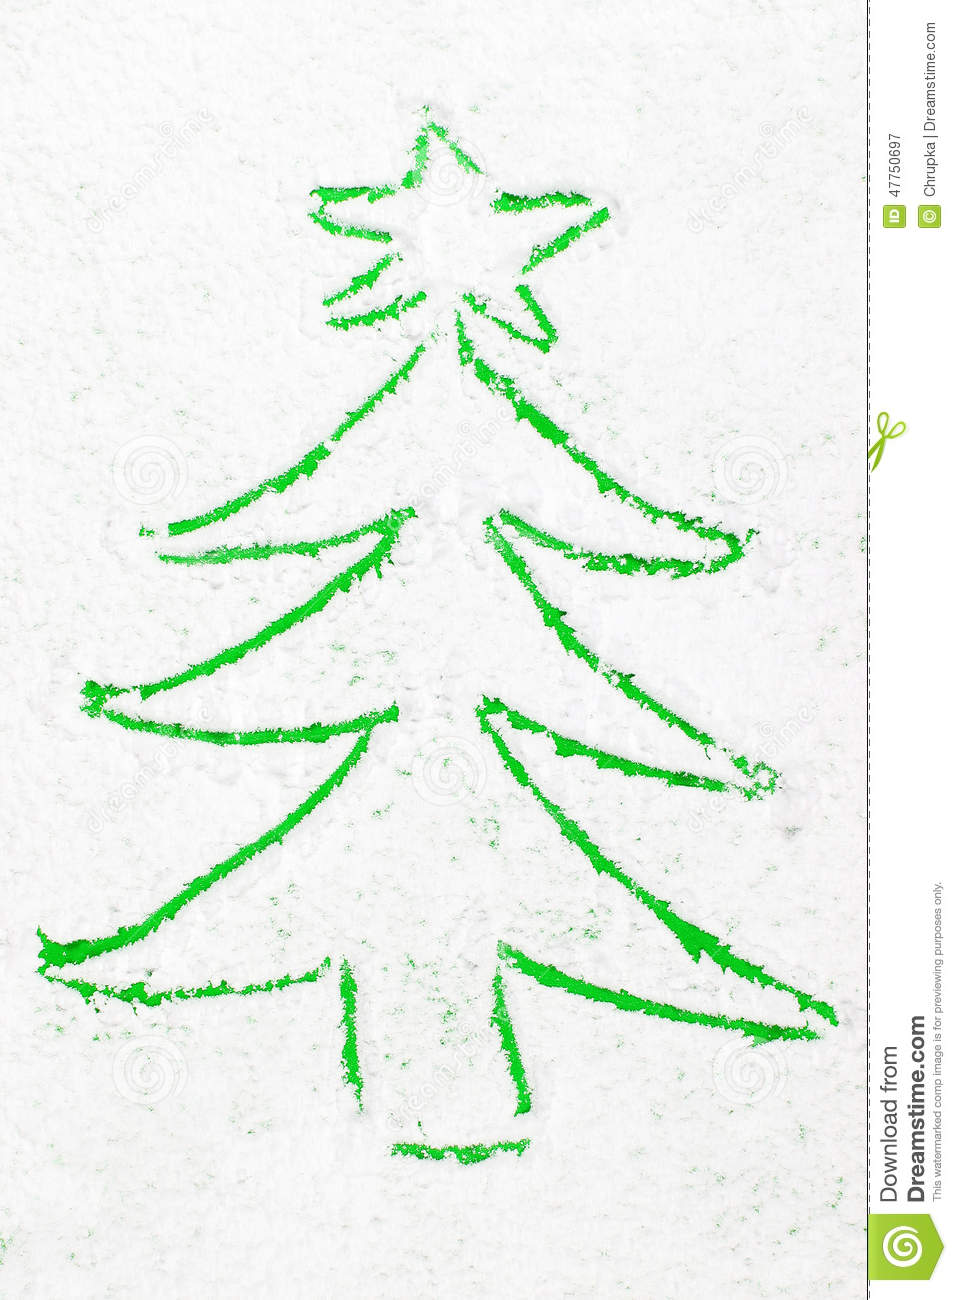 Green Tree Outline